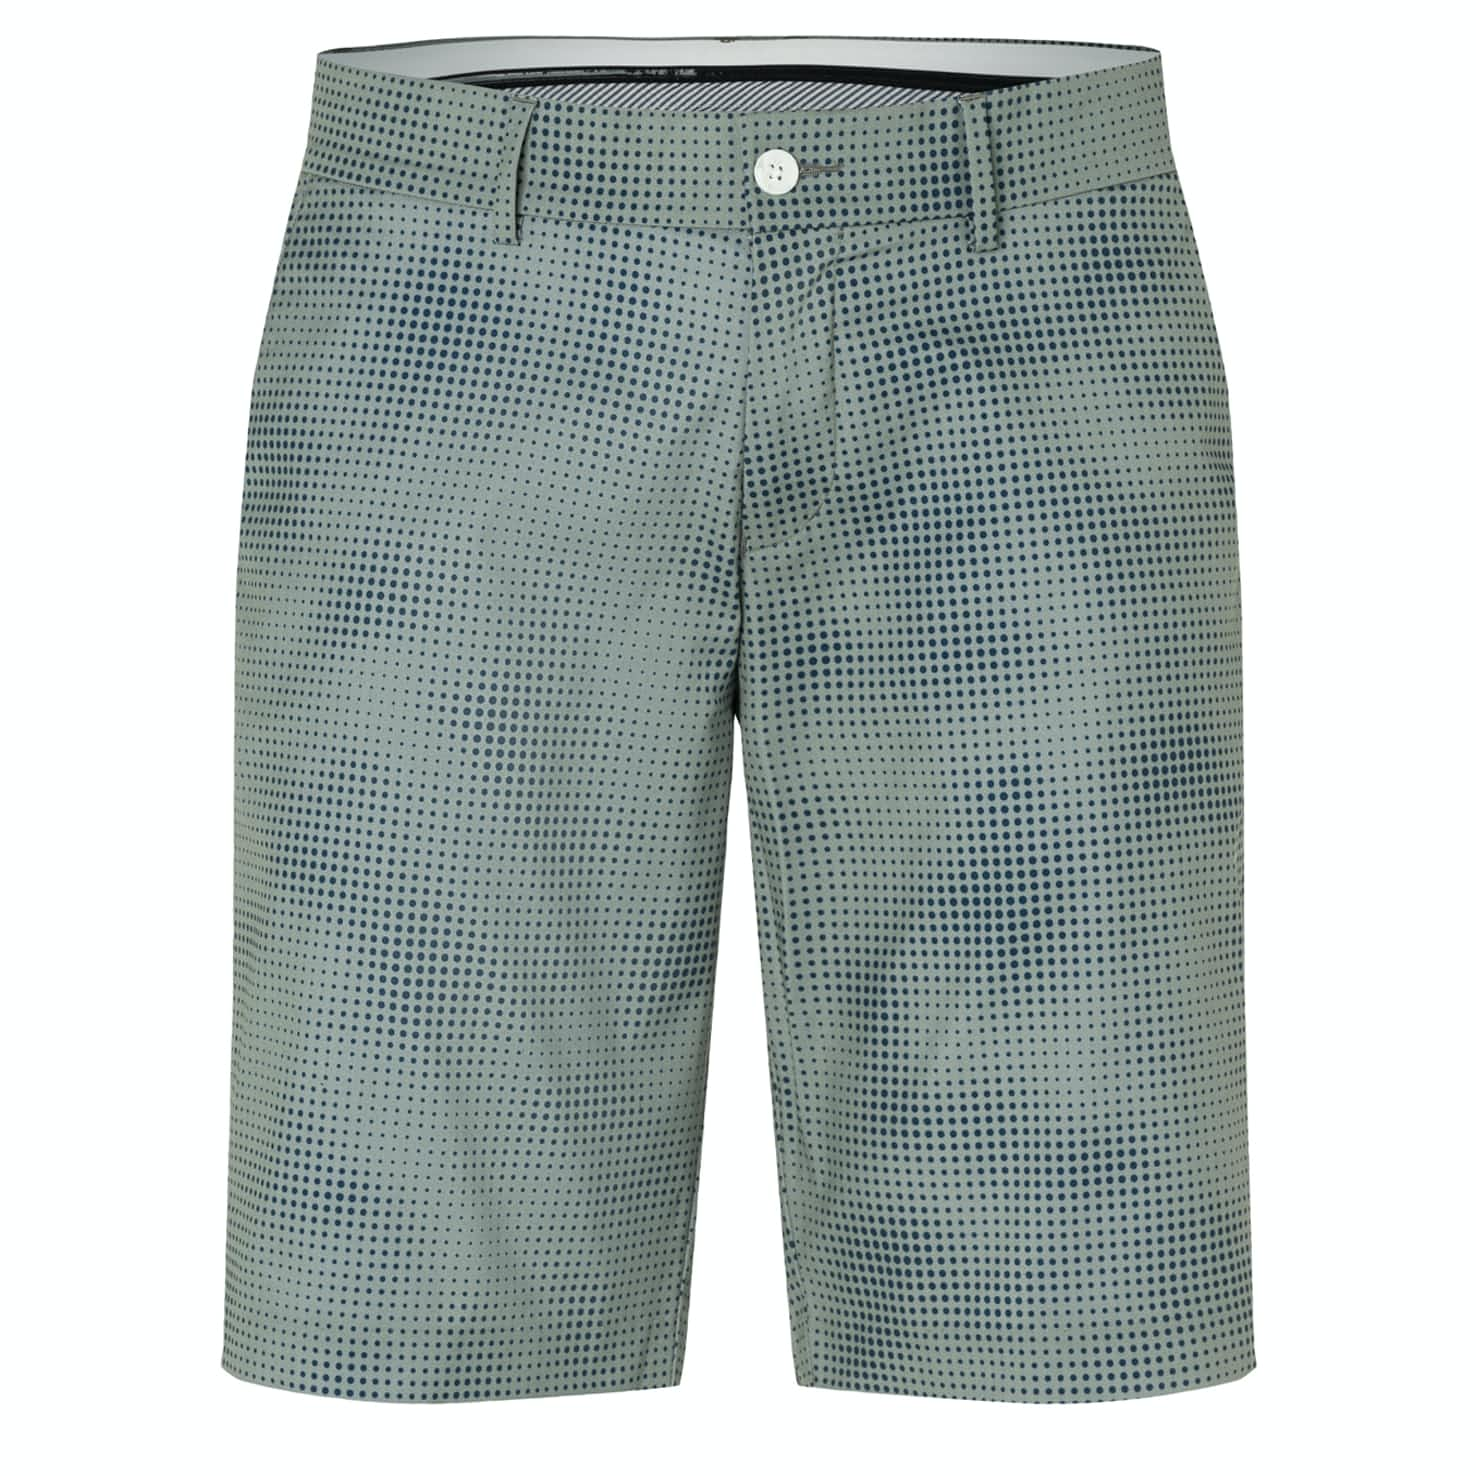 Inaction Printed Shorts Steel Grey - SS19